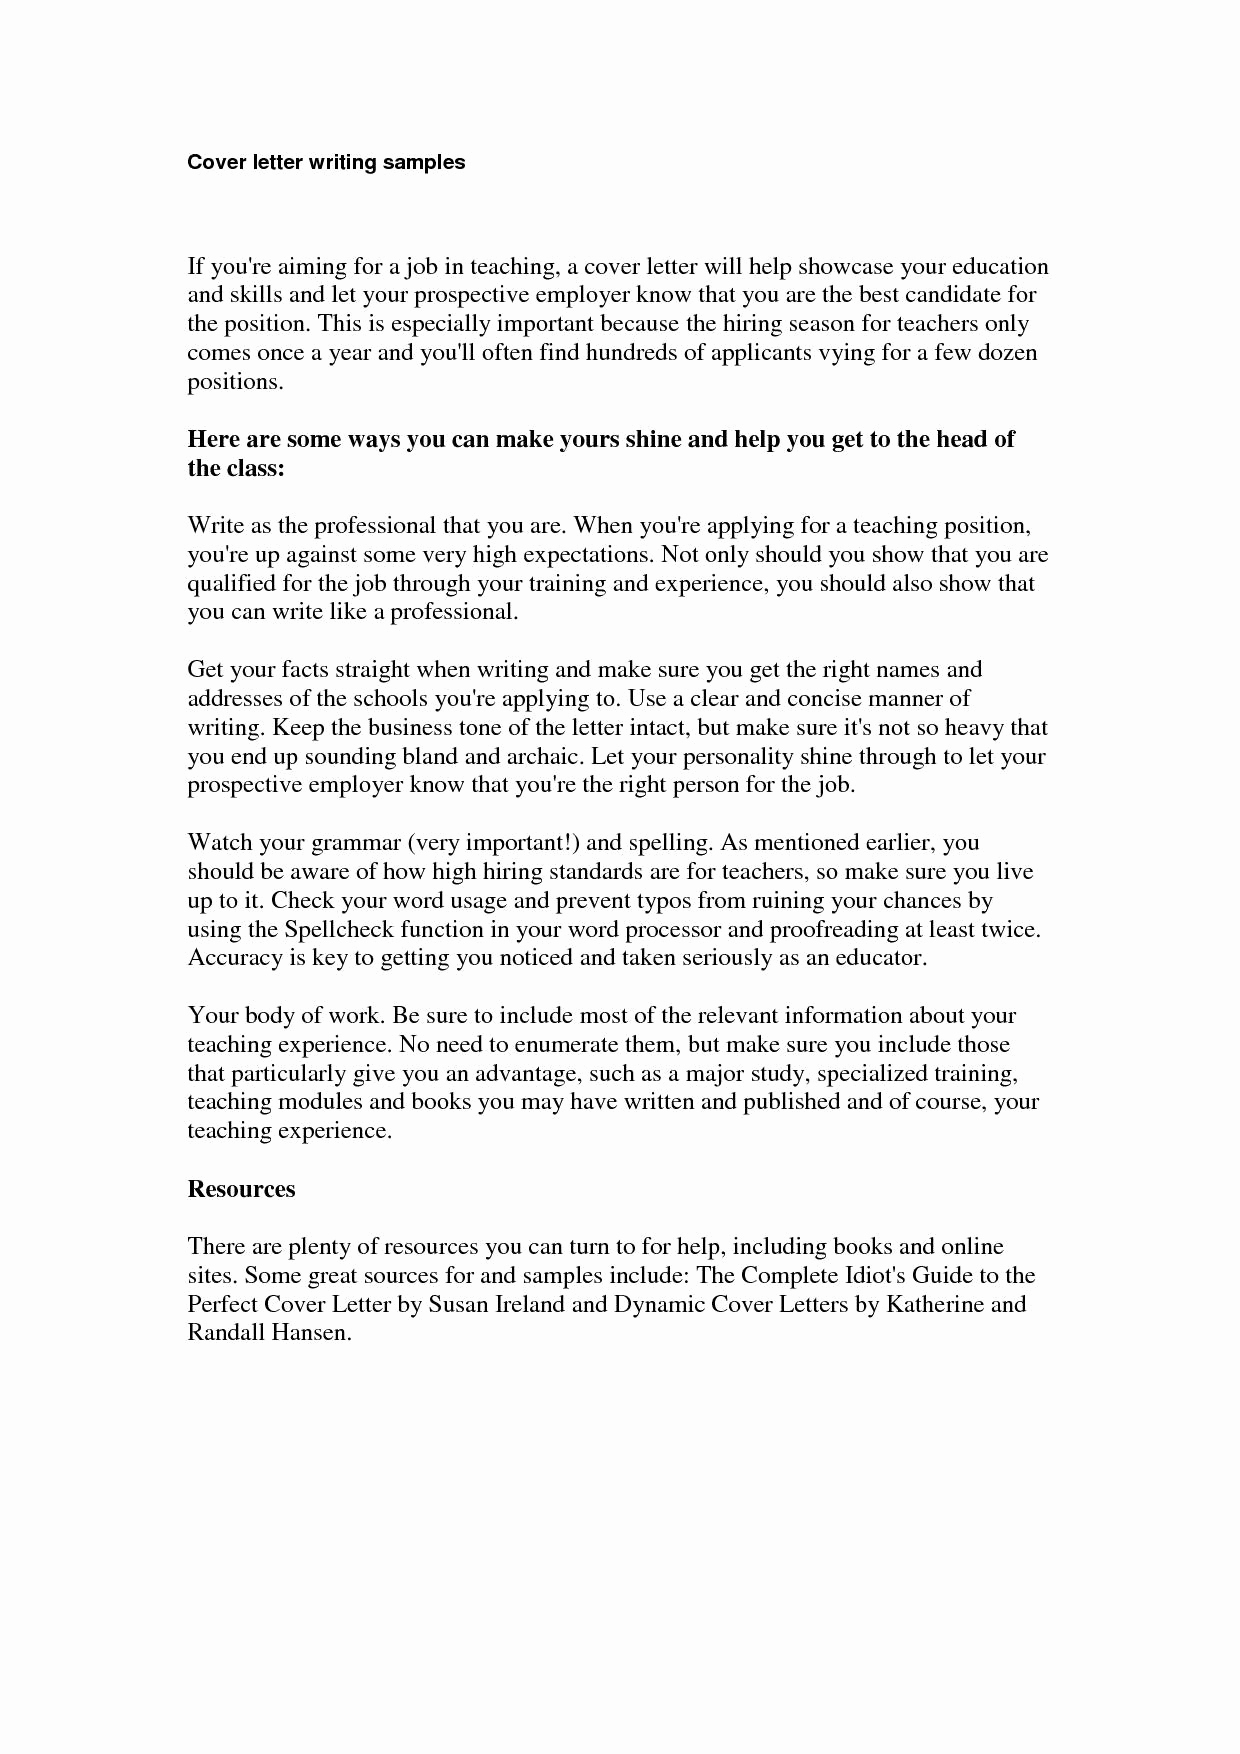 Direct Care Worker Resume - Cover Letter for Direct Care Worker 15 Unique How to Write A Job